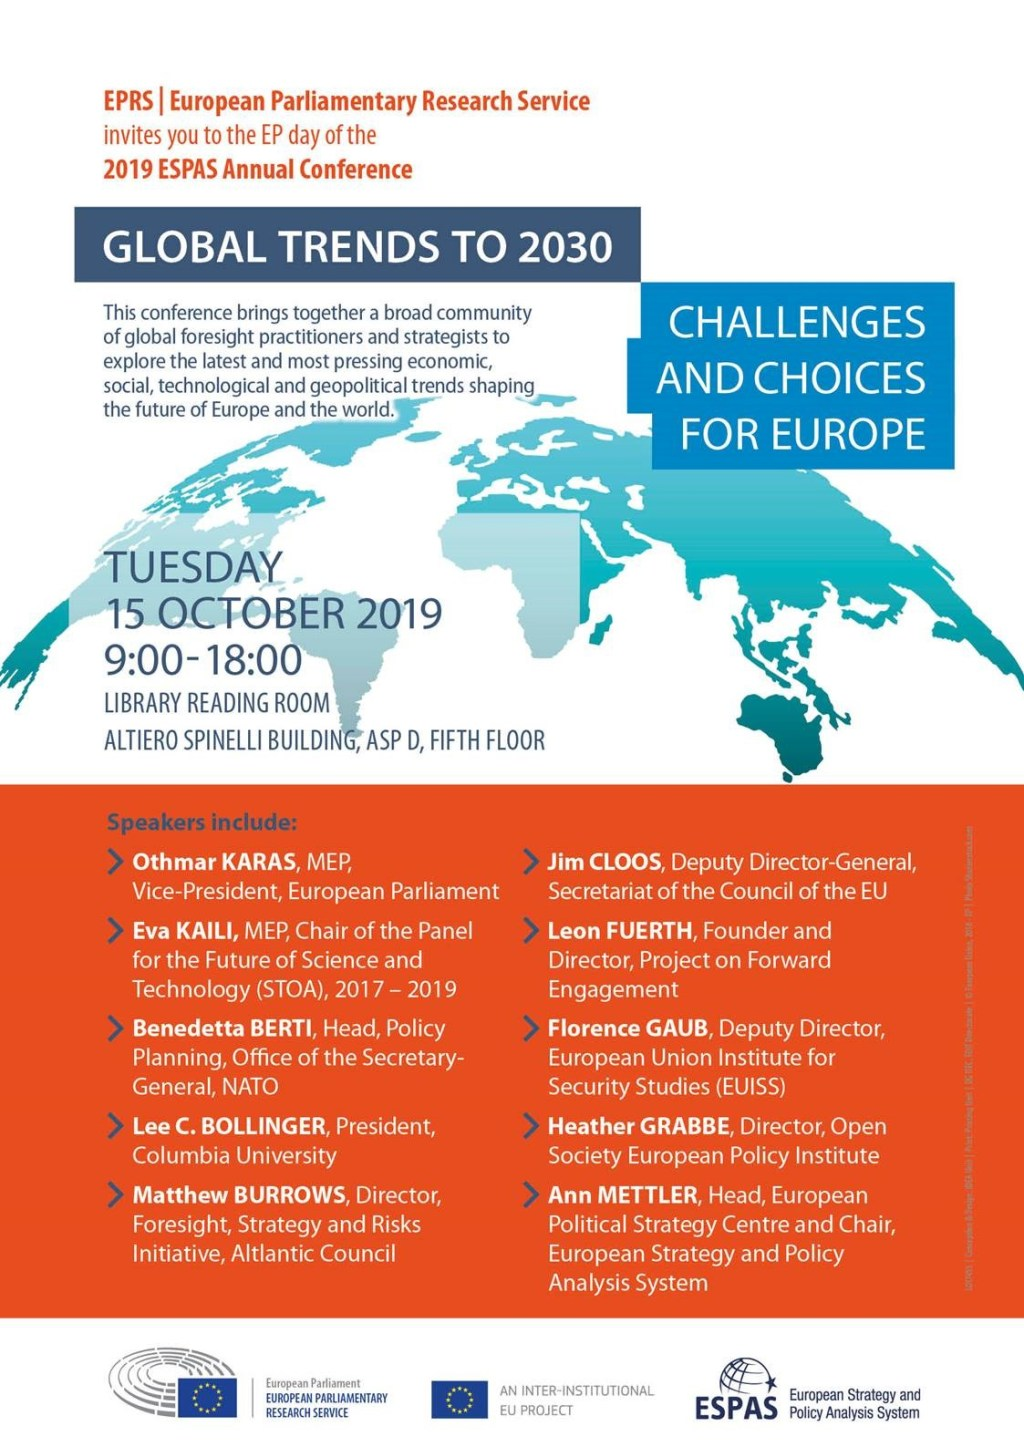 ESPAS Conference 2019: Challenges and choices for Europe